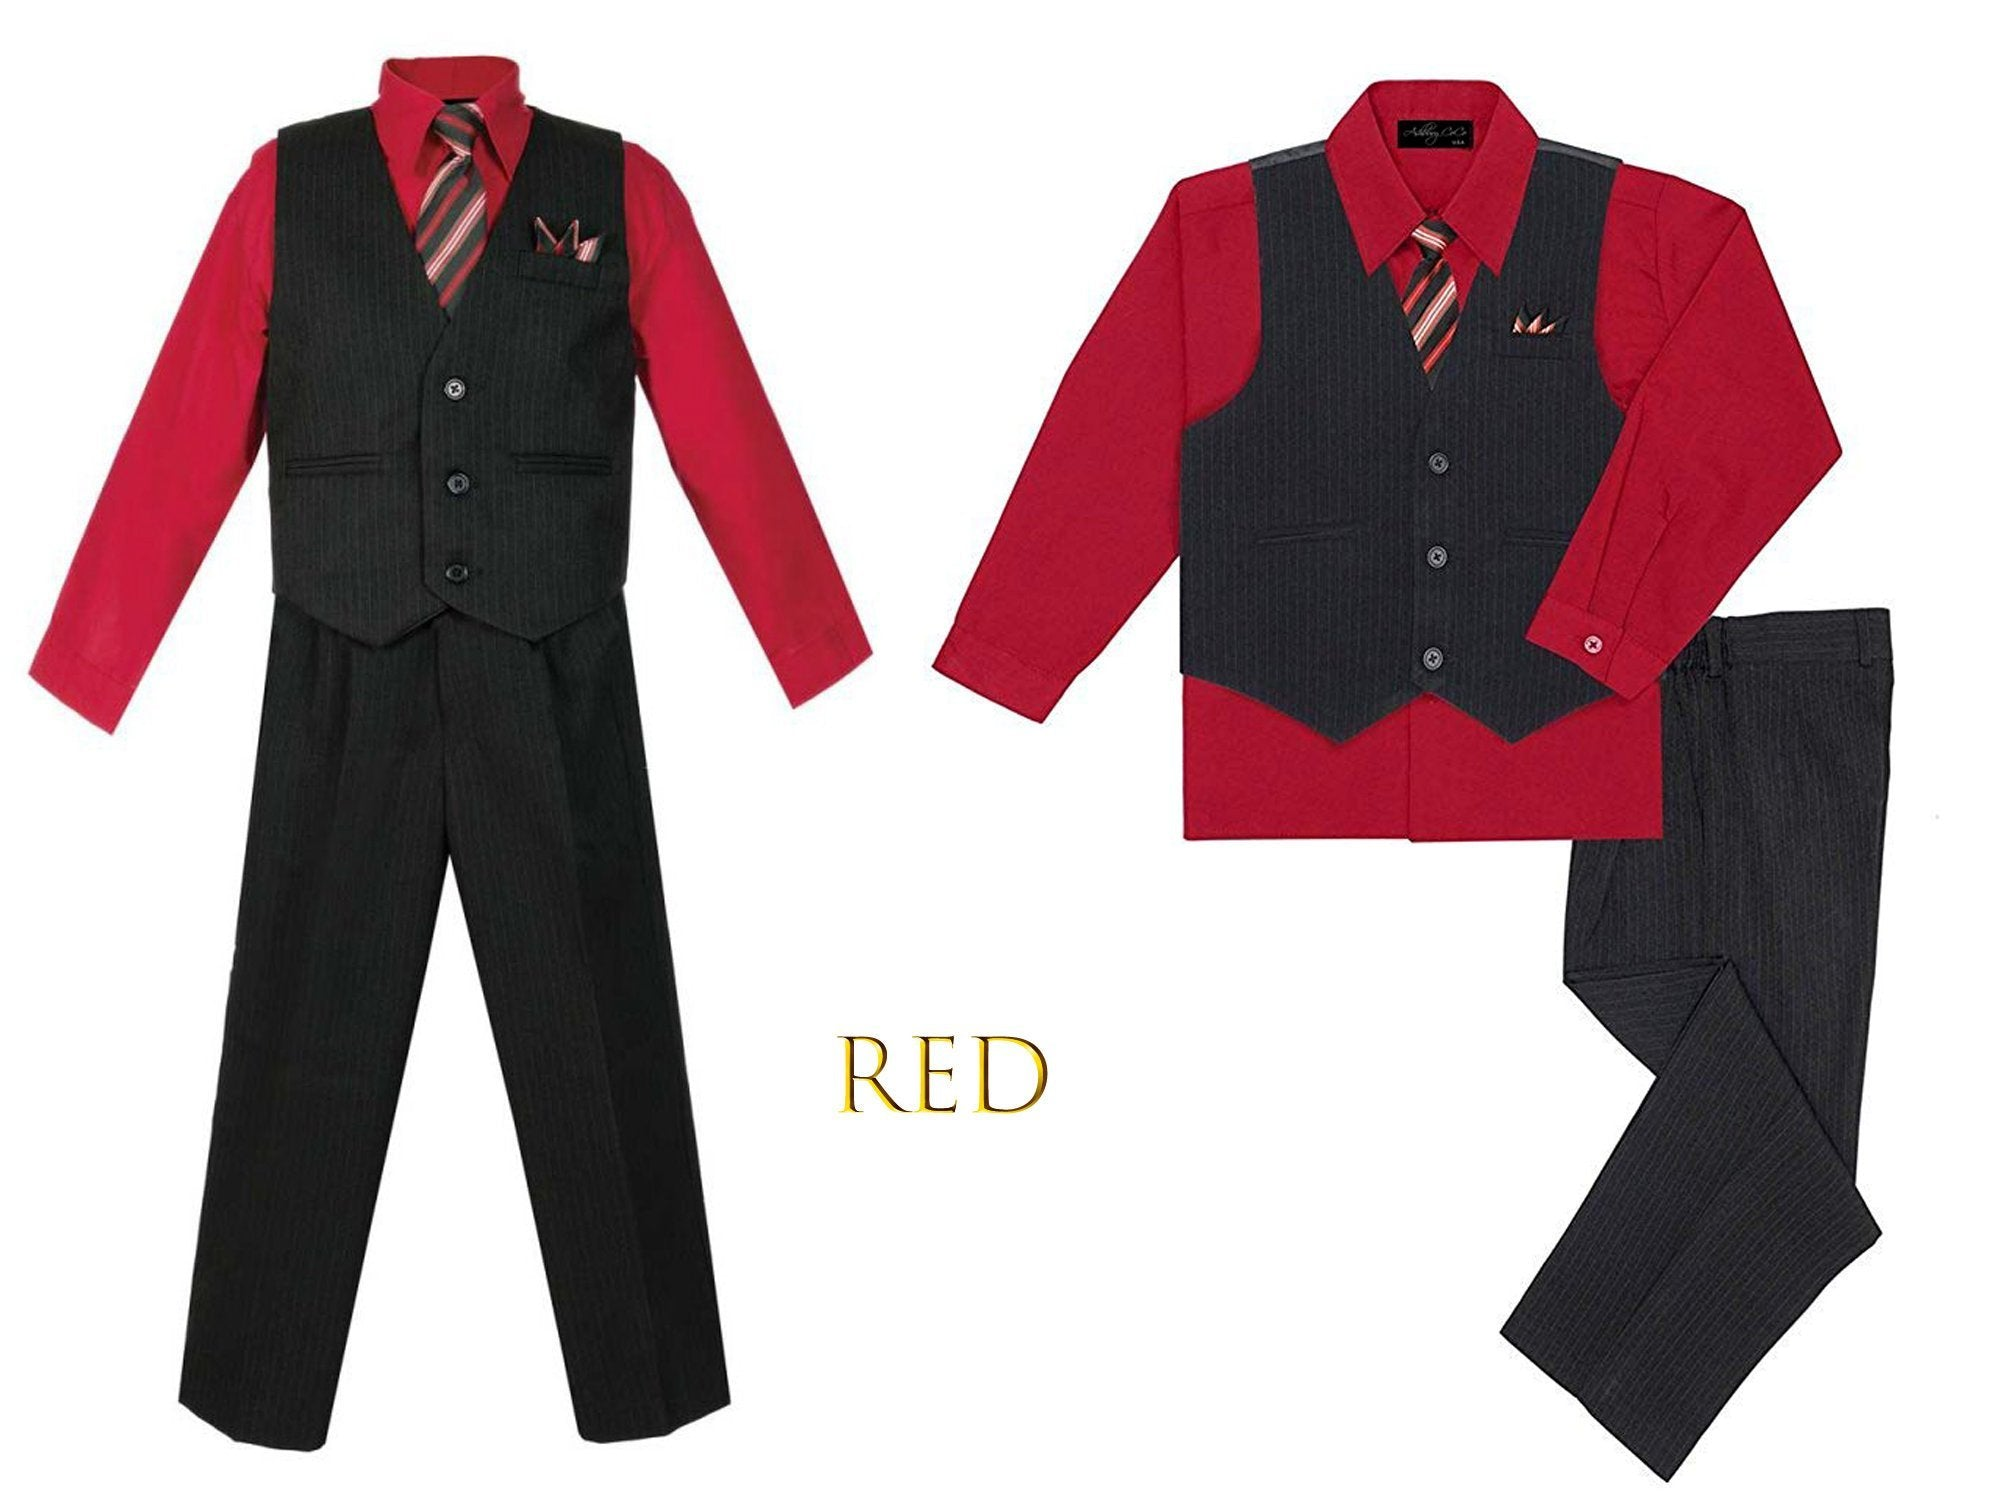 4pc Formal Baby Teen Boy Coral Red Vest Necktie Silver Pants Suits S-7 L: 12-18 months